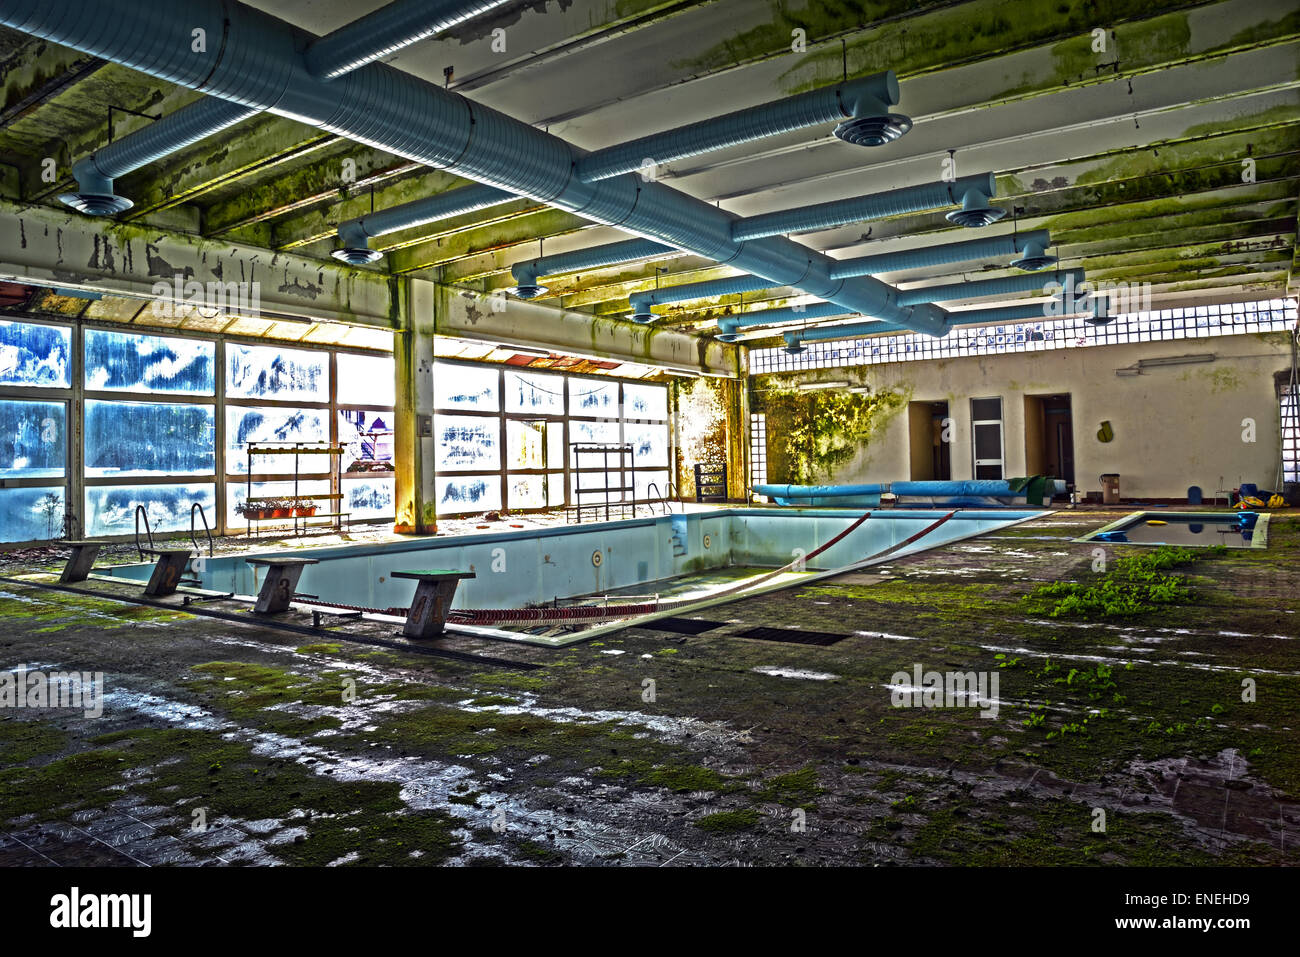 old abandoned swimming pool in HDR - Stock Image